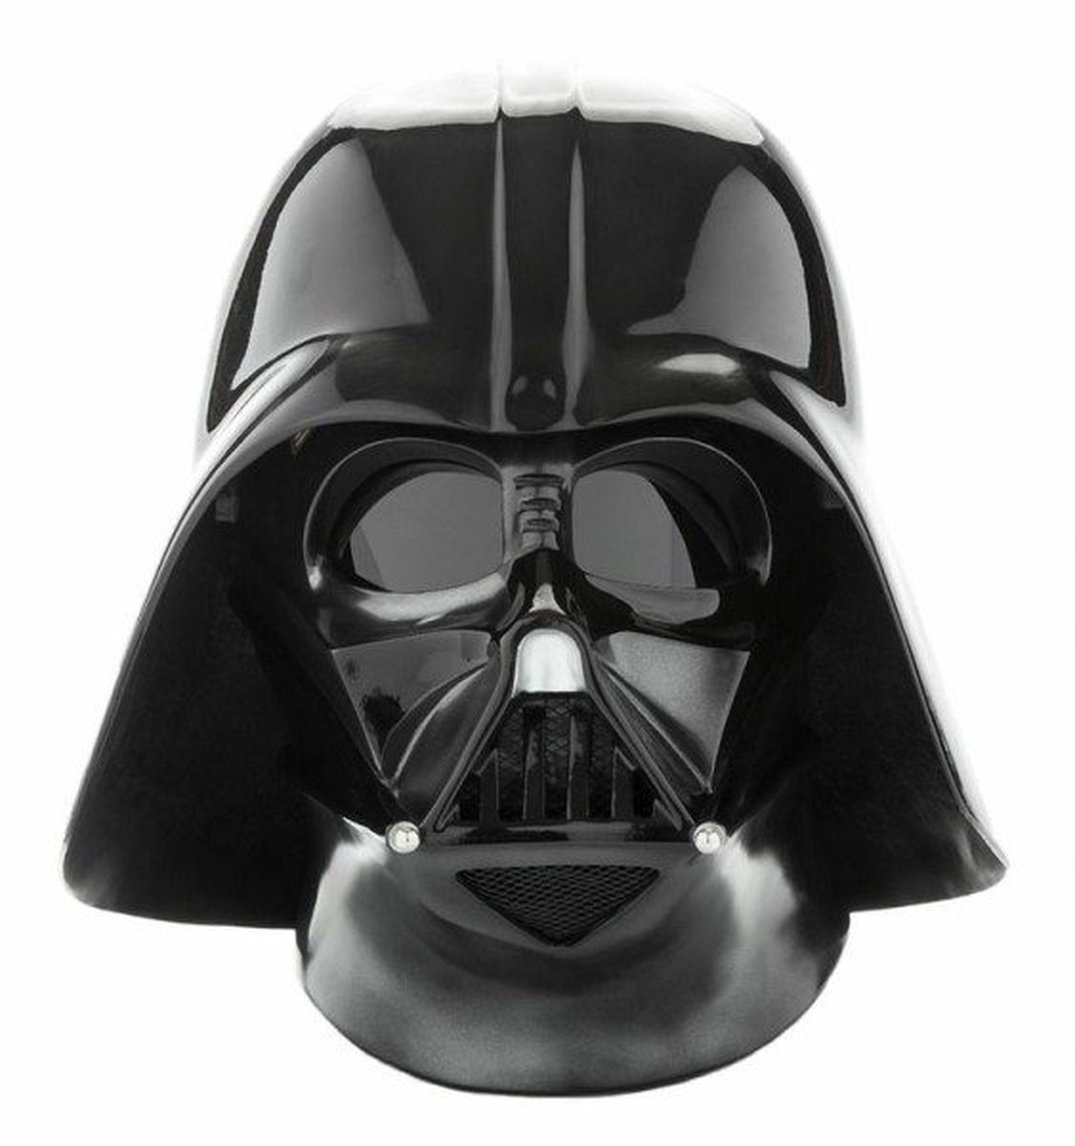 Darth Vader Helmet Standard – star wars prop to buy